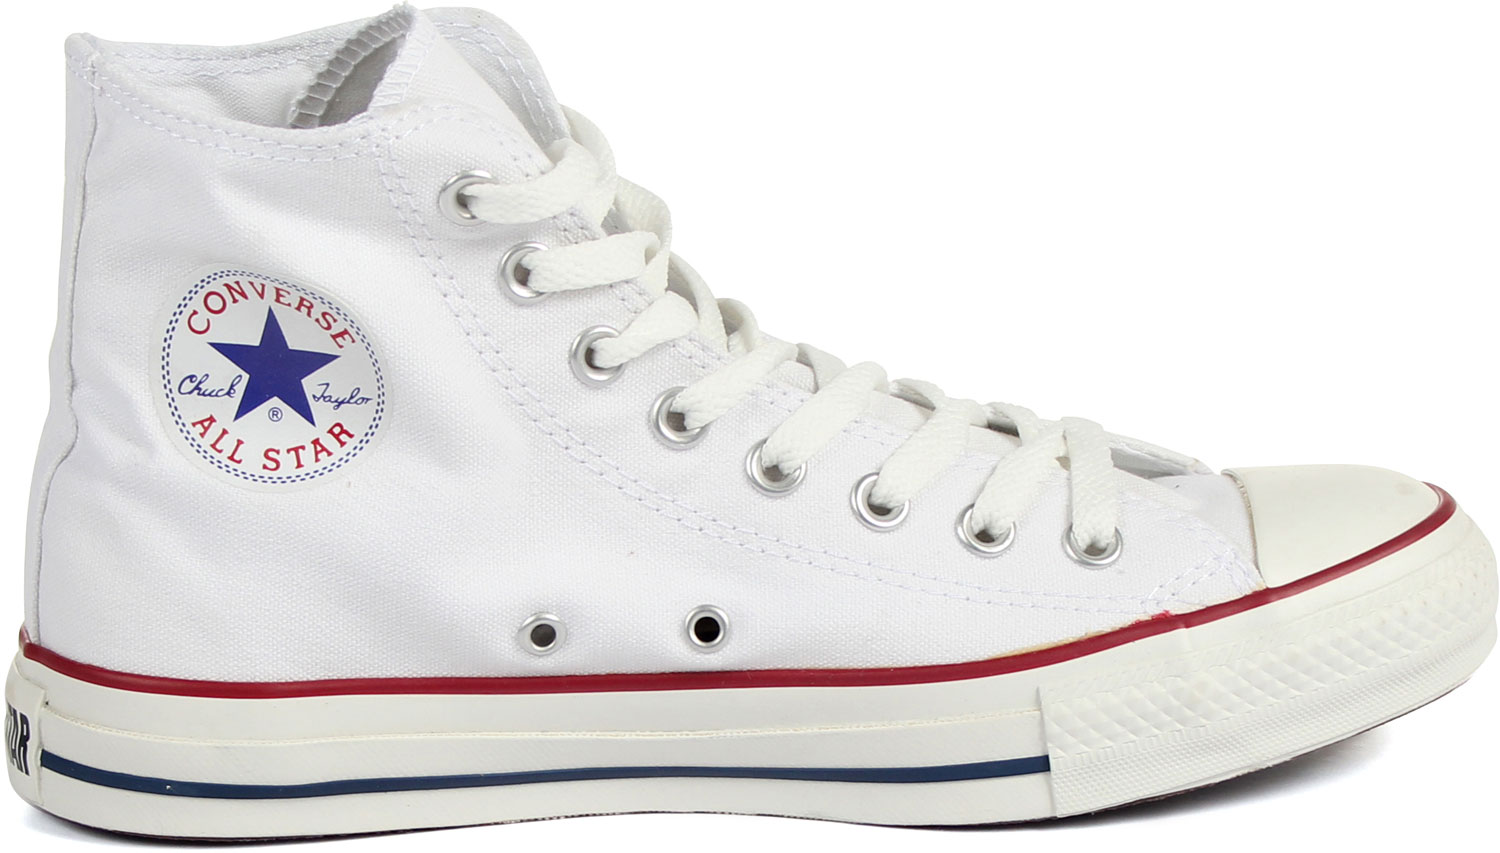 13fc7a5b003 Converse Chuck Taylor All Star Shoes (M7650) Hi Top in Optical White